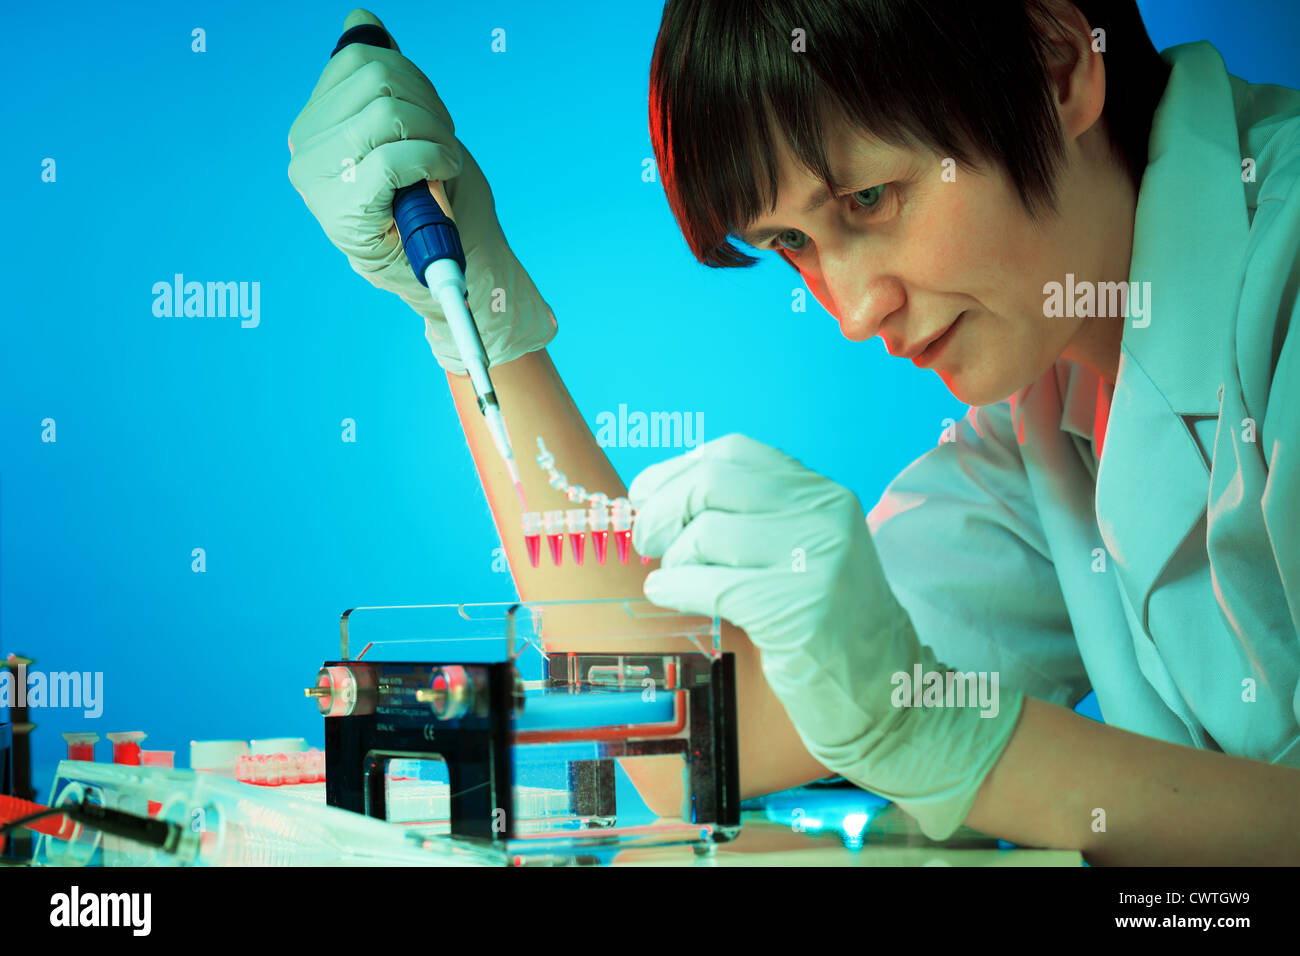 Girl experimenting with genetic material - Stock Image